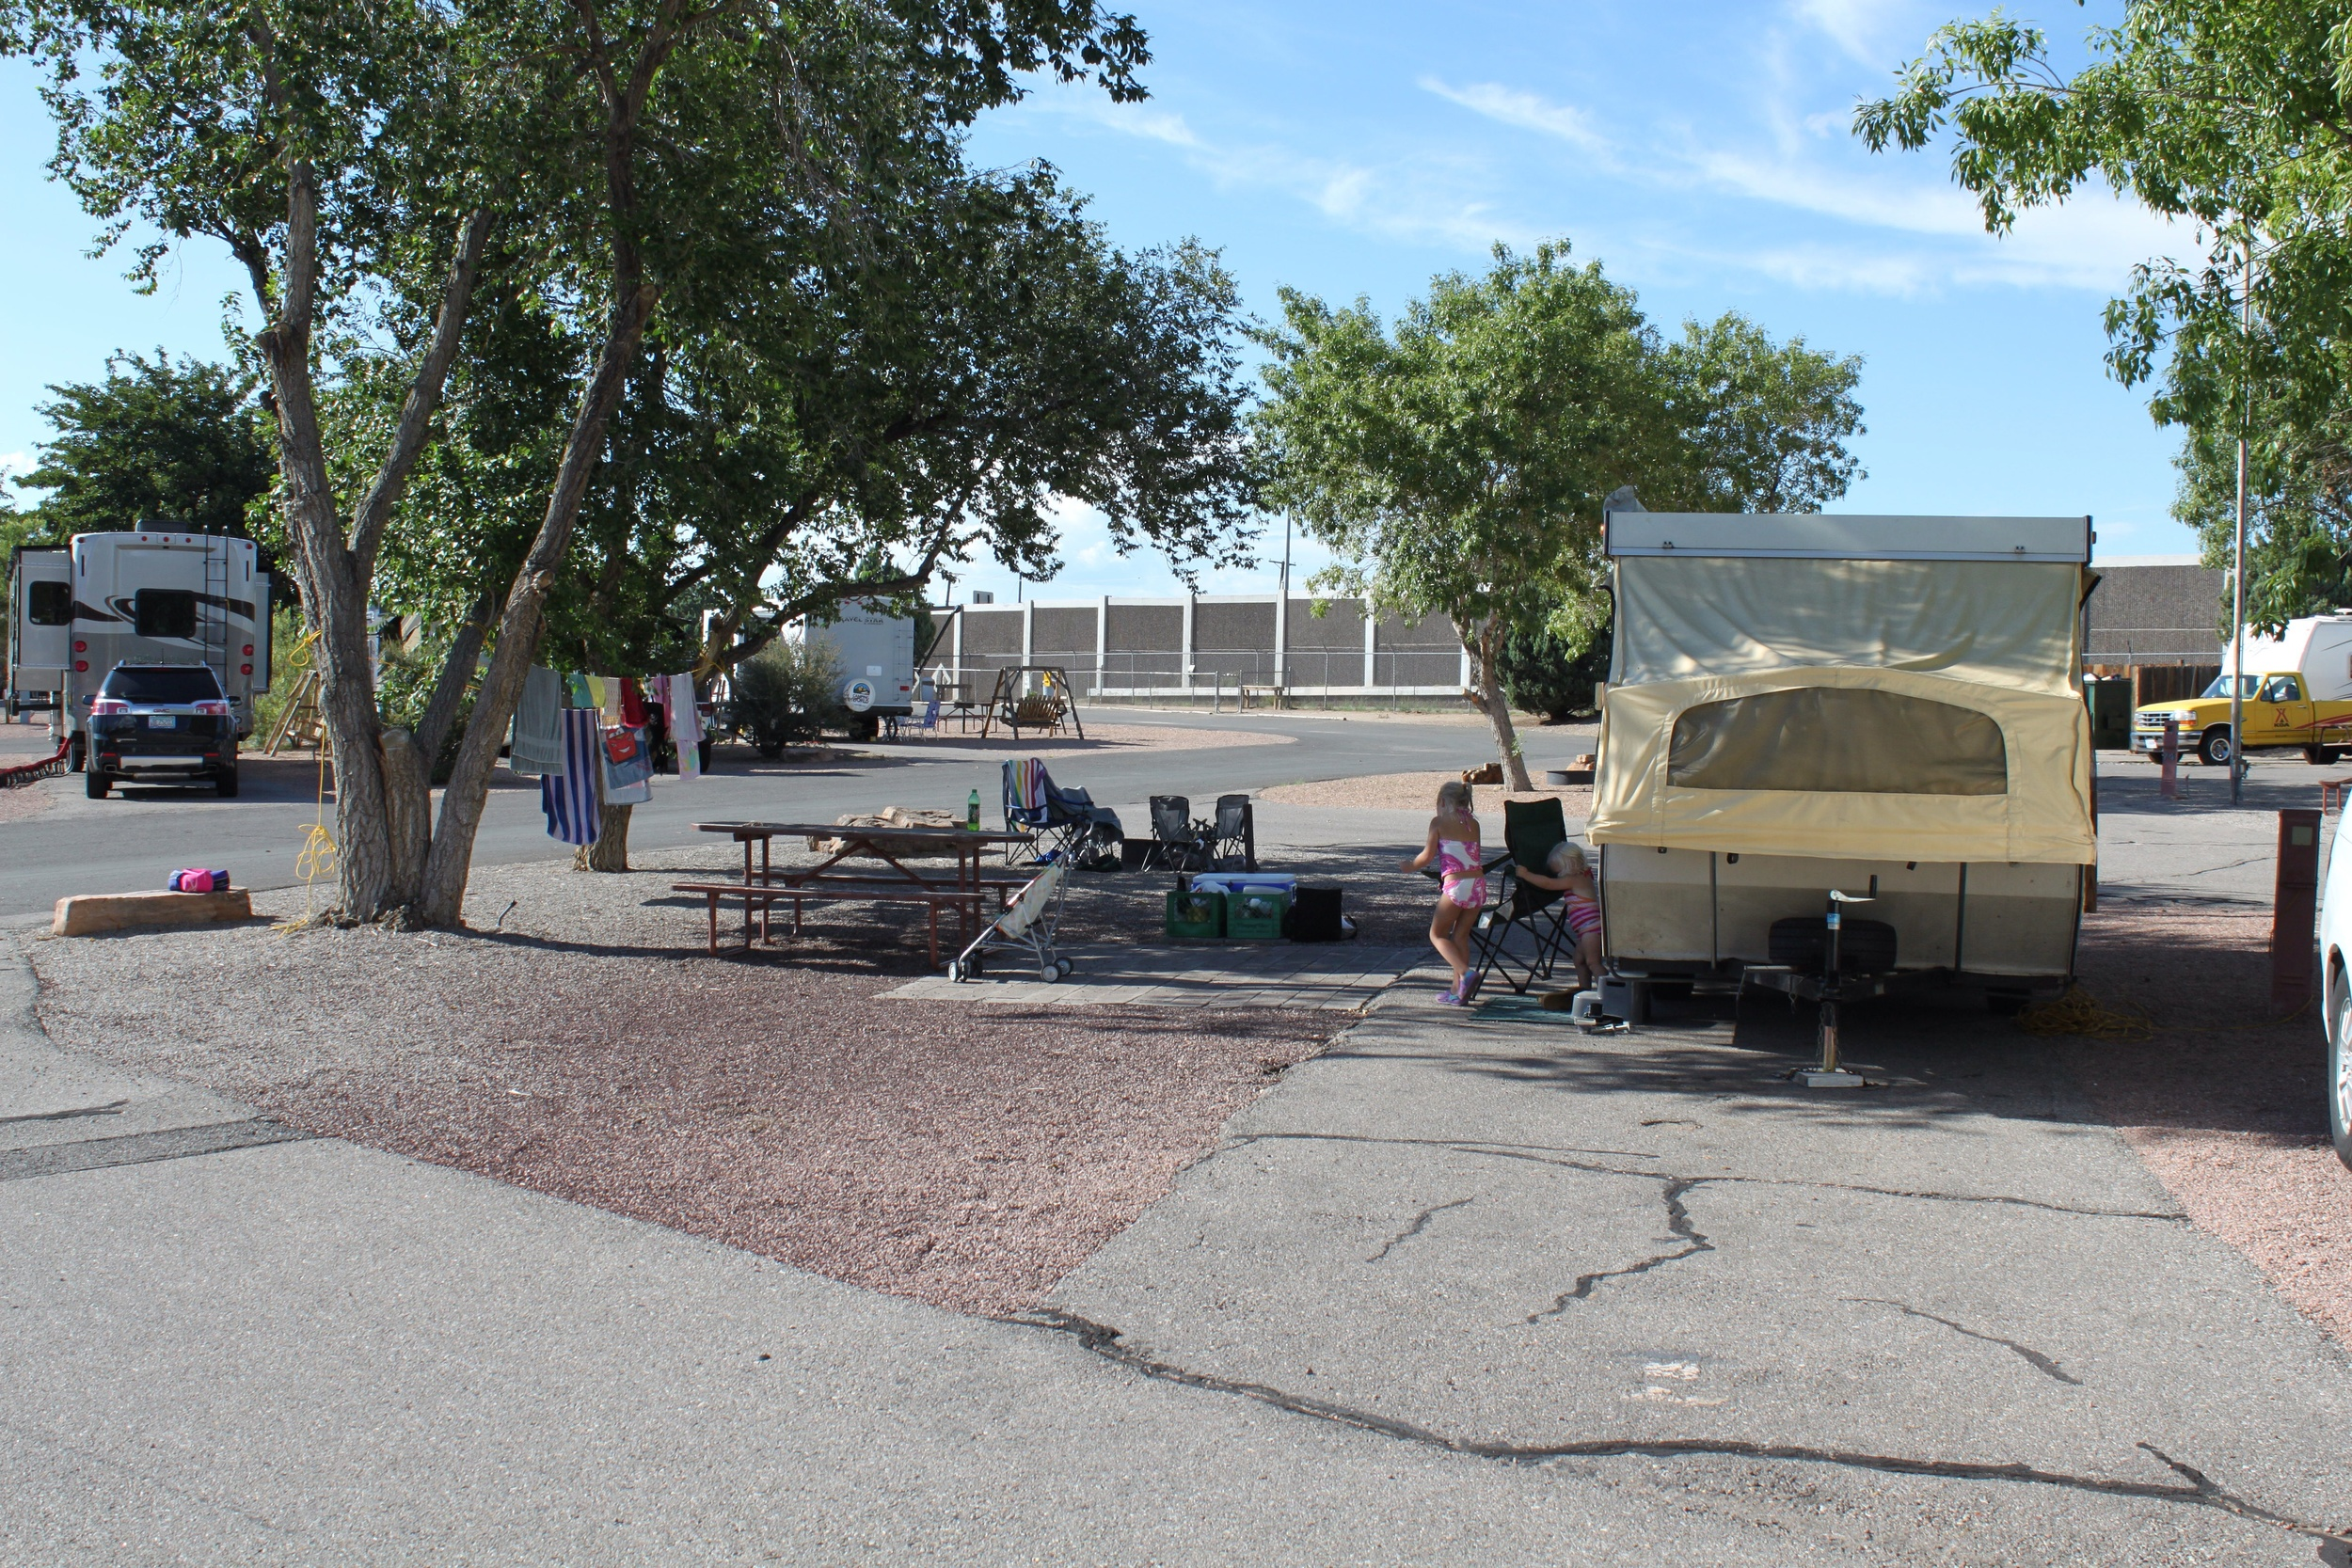 Our campsite in Albuquerque. That wall in the background separates us from the highway.